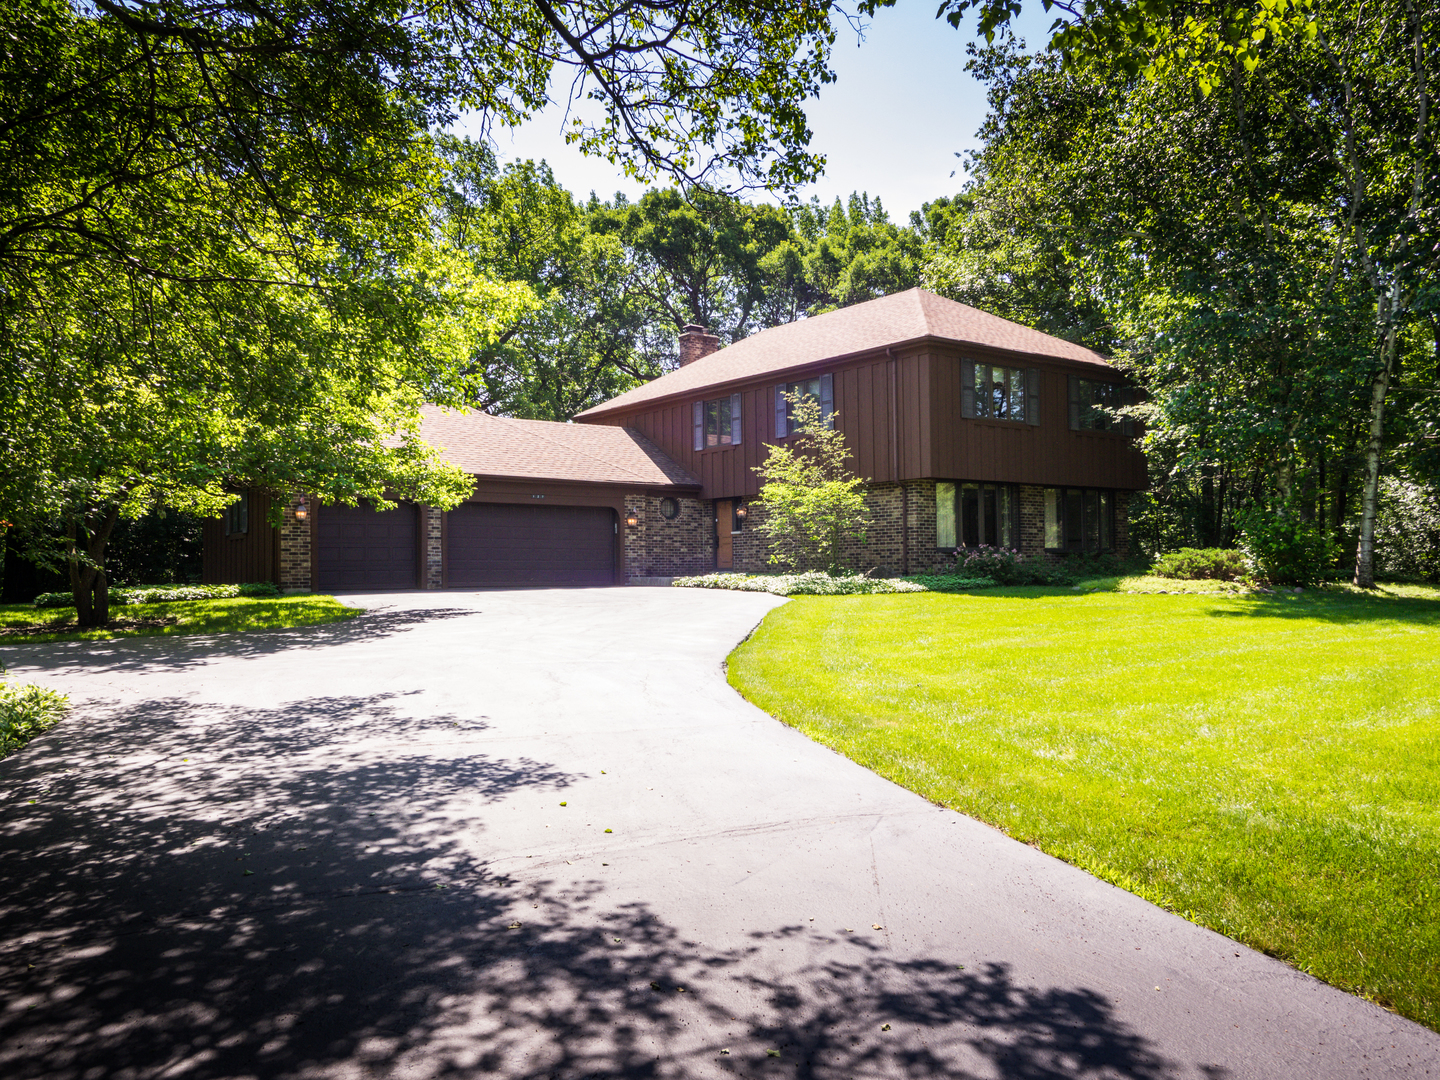 127 Hidden Oaks Drive, Barrington in Cook County, IL 60010 Home for Sale